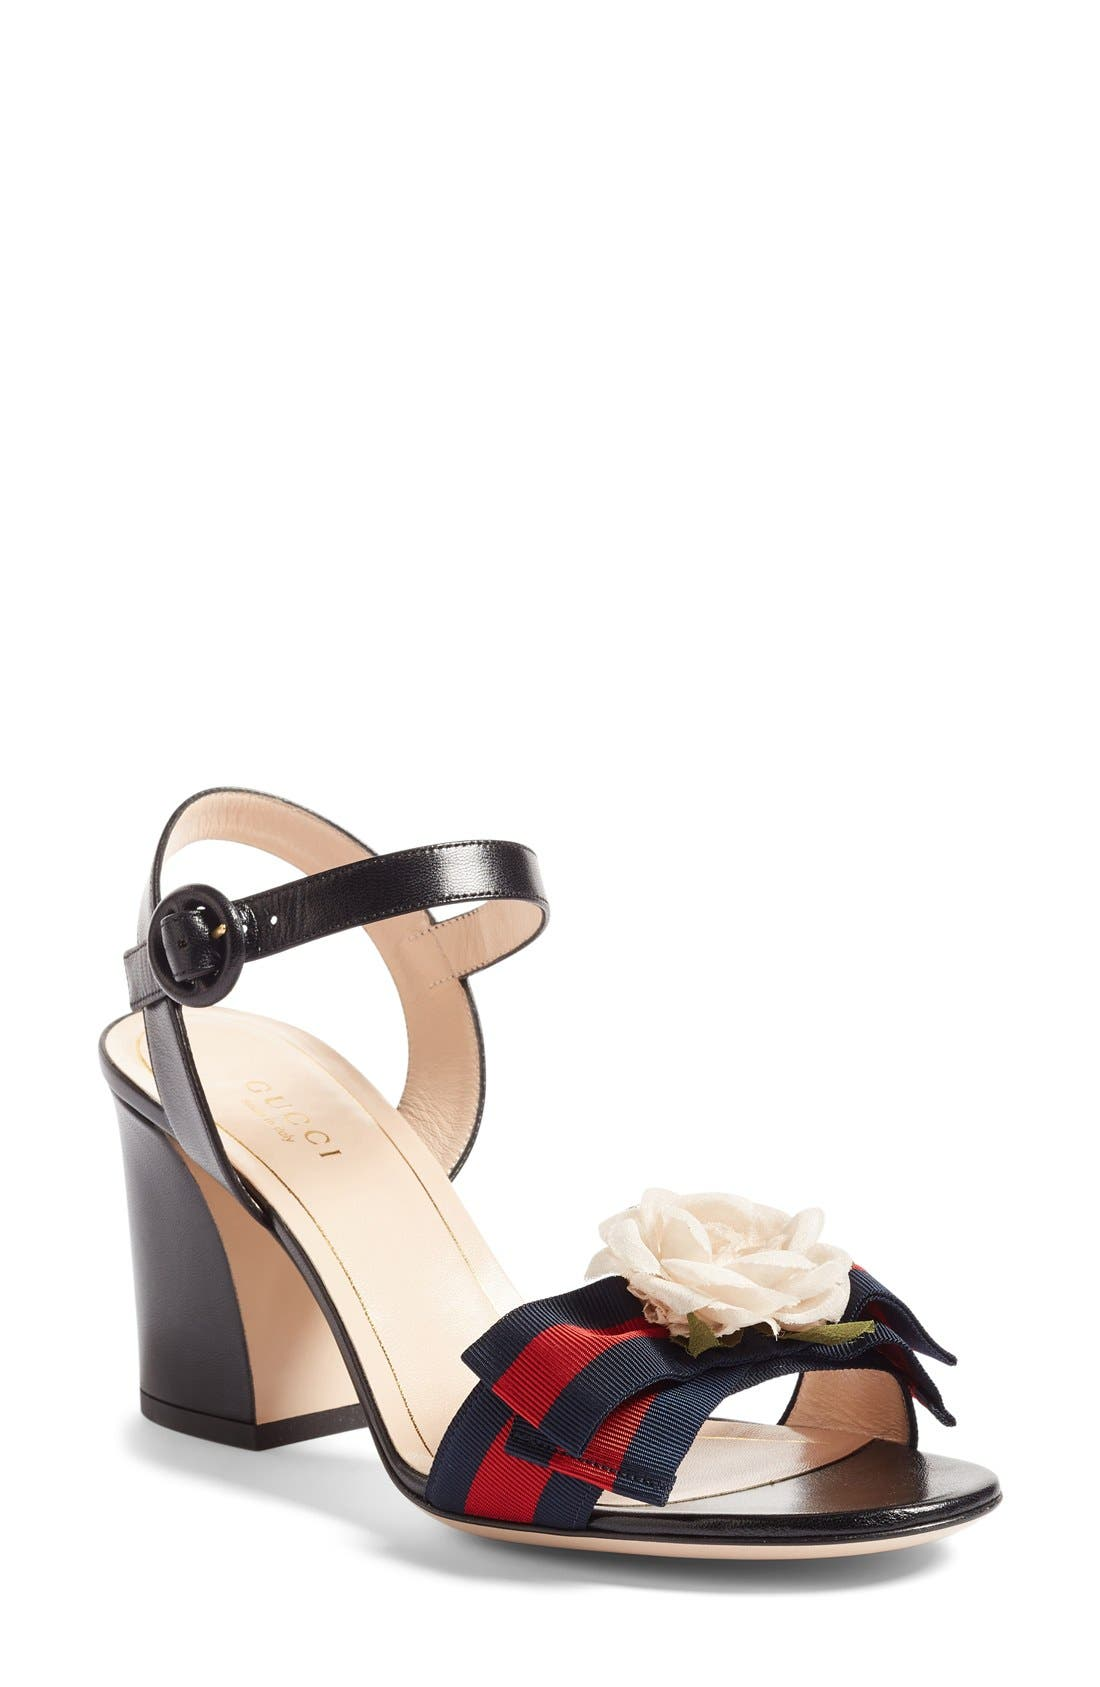 Cindi Quarter Strap Sandal,                         Main,                         color, Black Leather